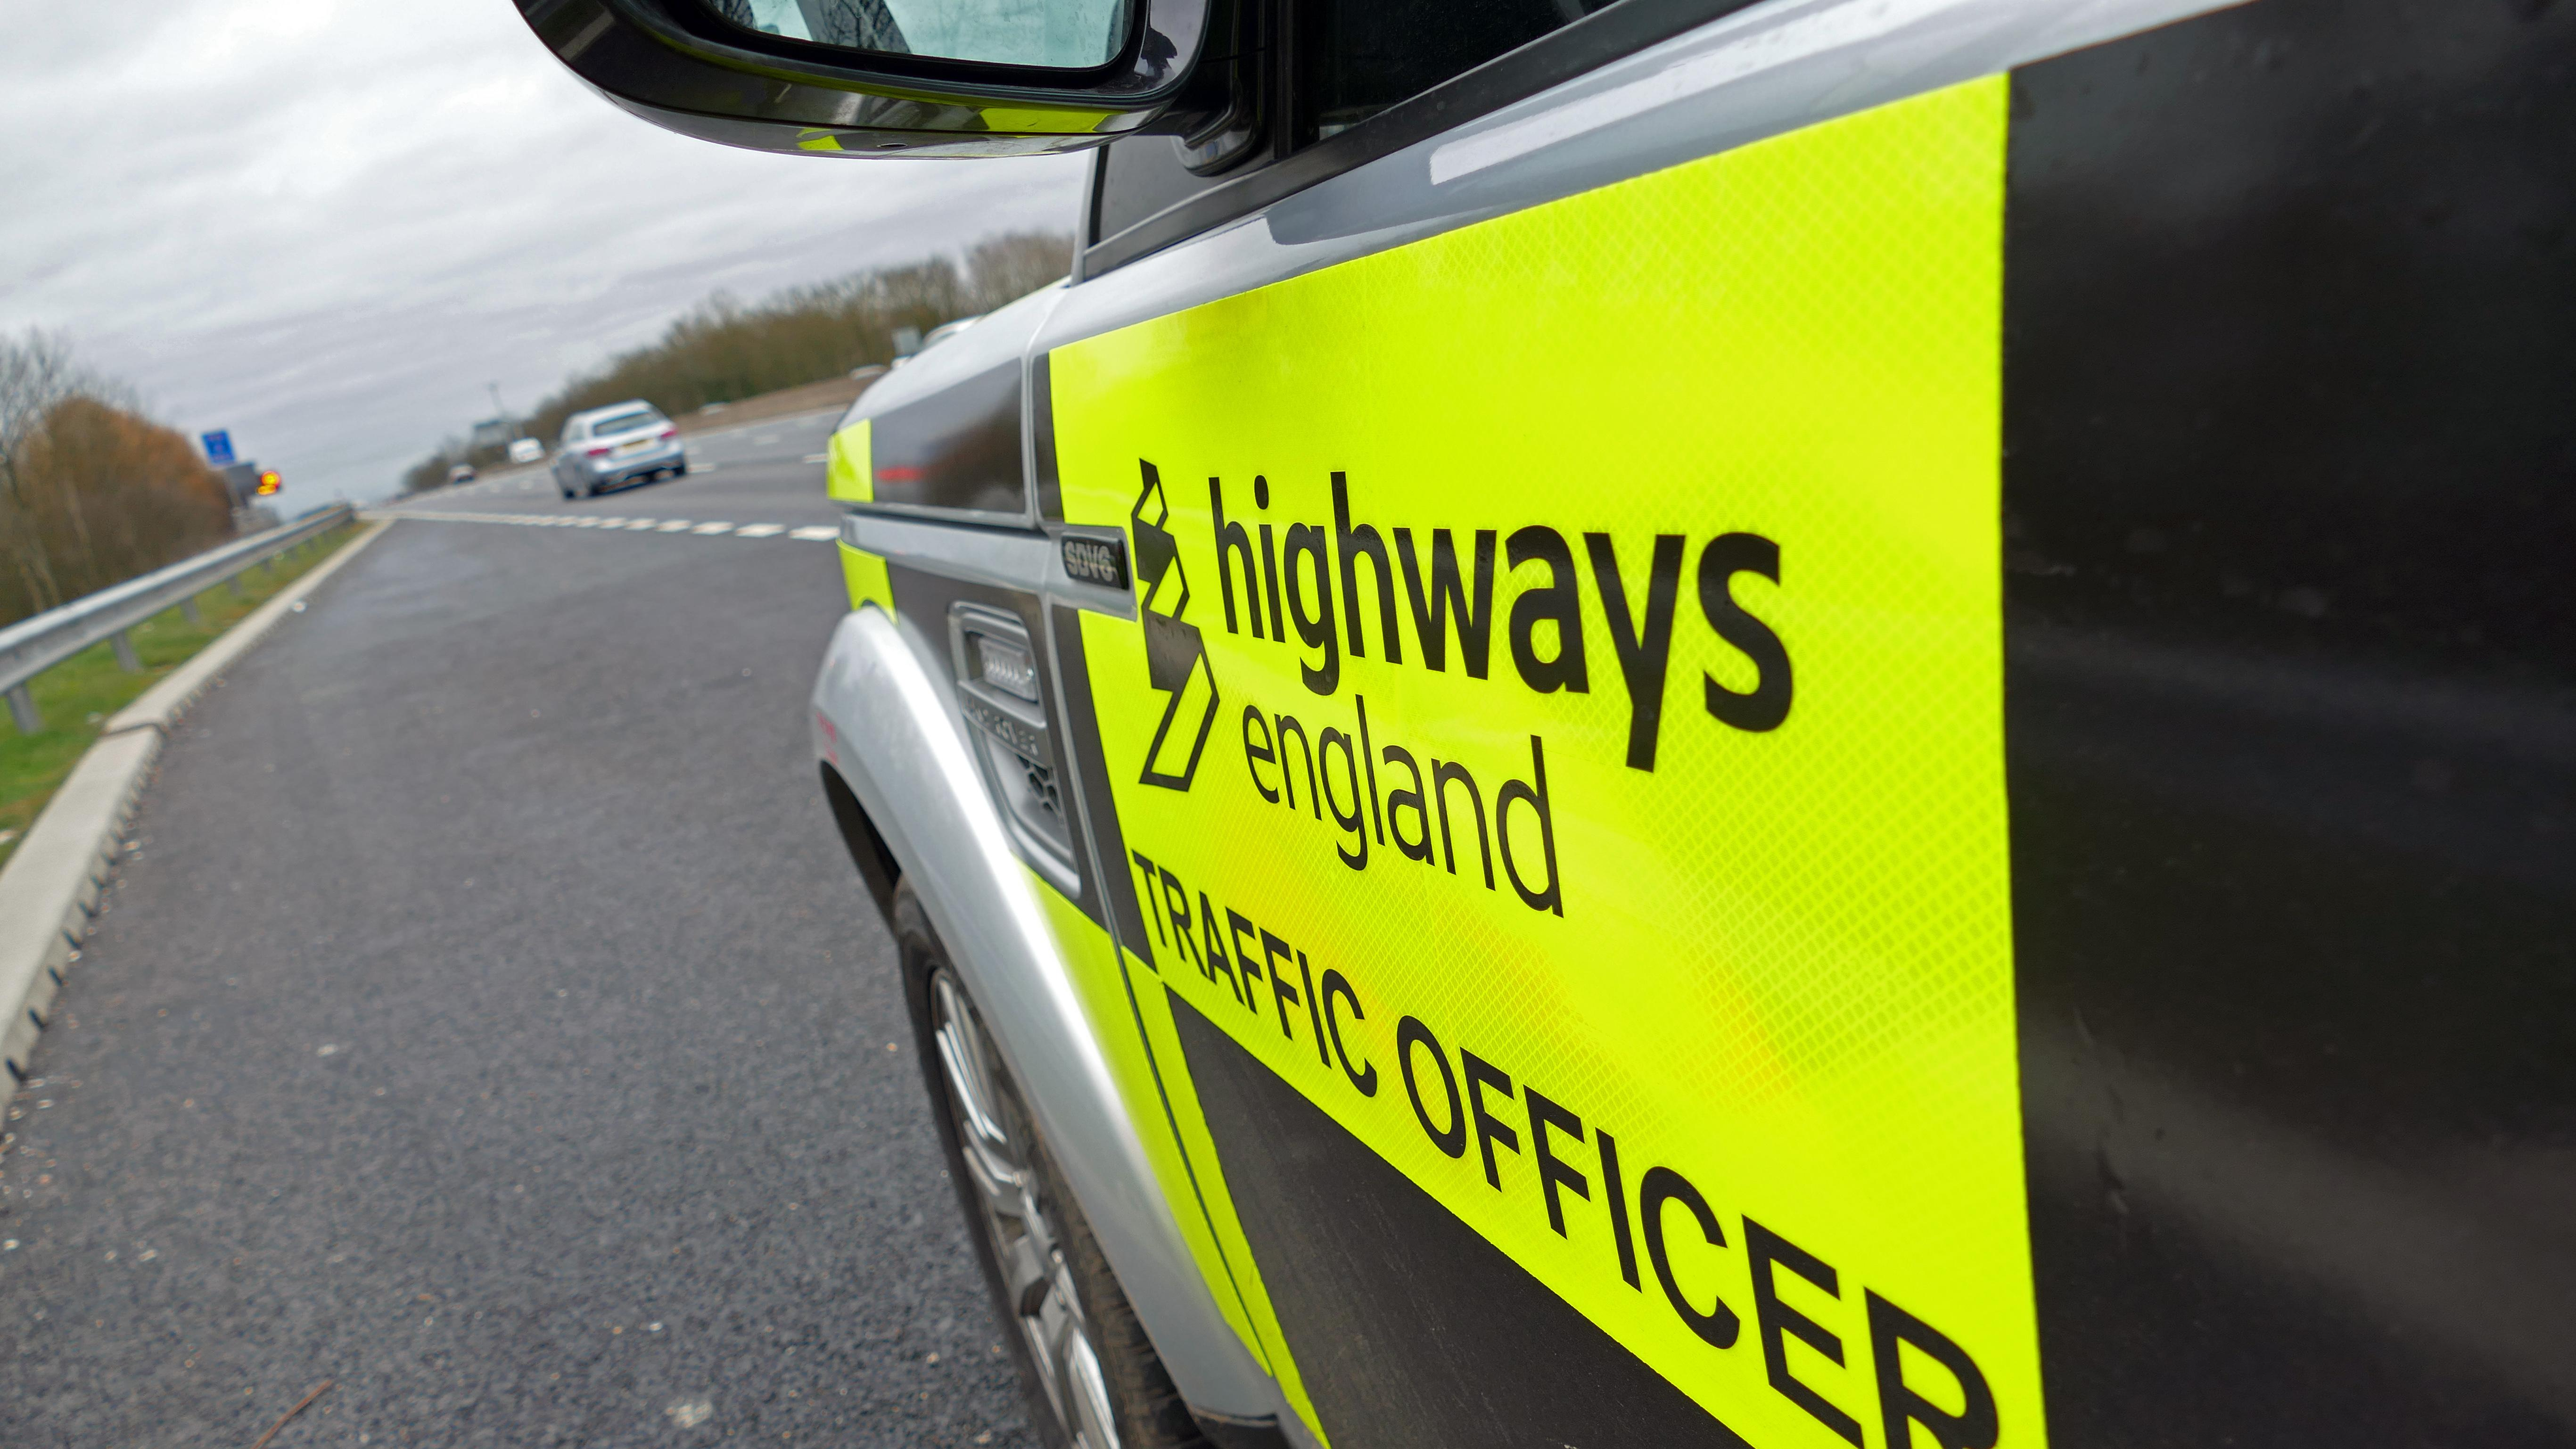 An image of a Highways England traffic officer's car